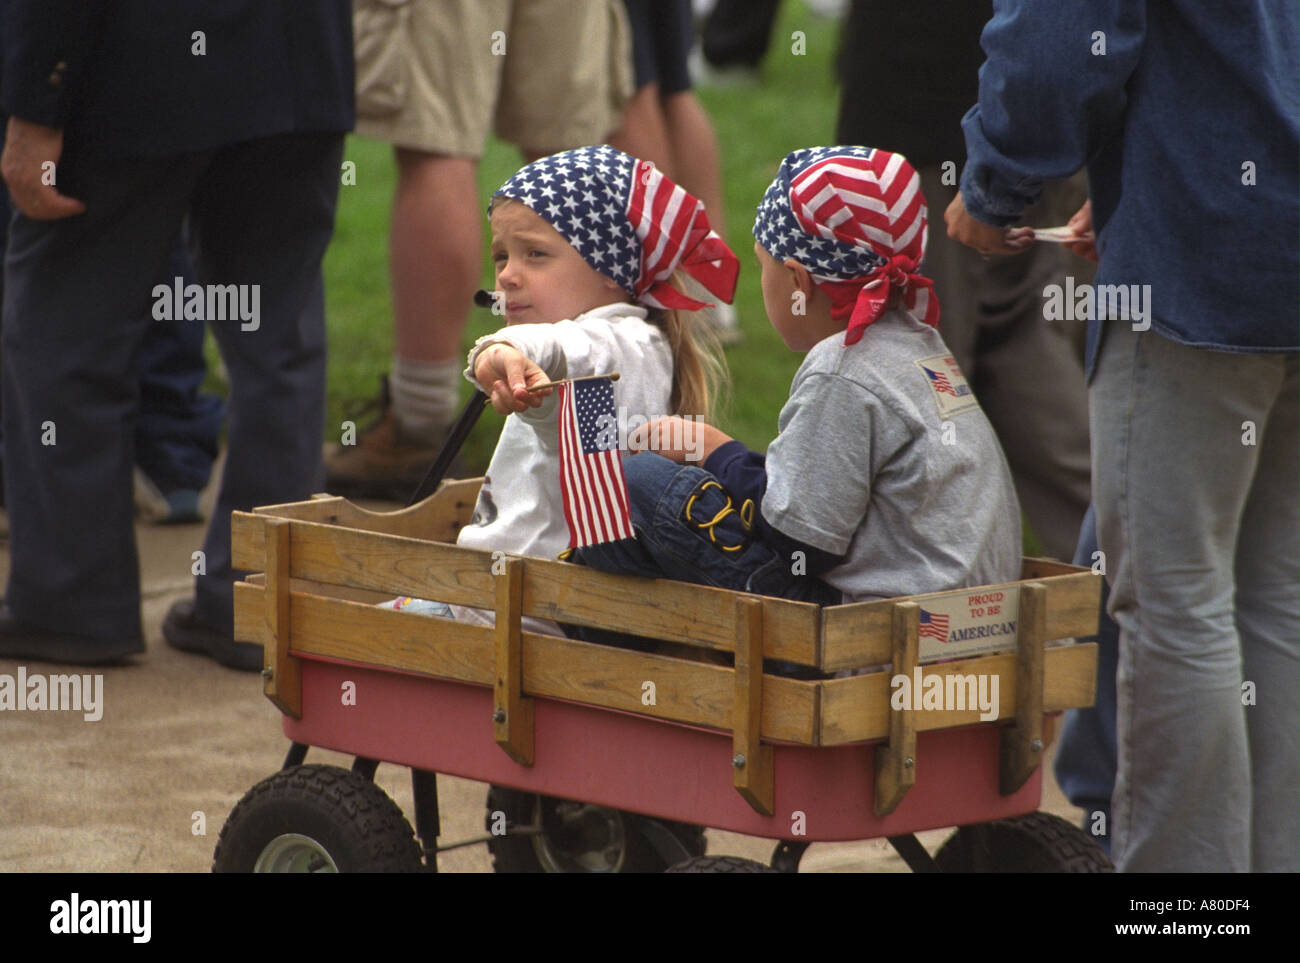 Children in wagon flag kerchiefs at Minnesota Remembers Memorial for 9/11 victims at state capitol. St Paul Minnesota MN USA - Stock Image